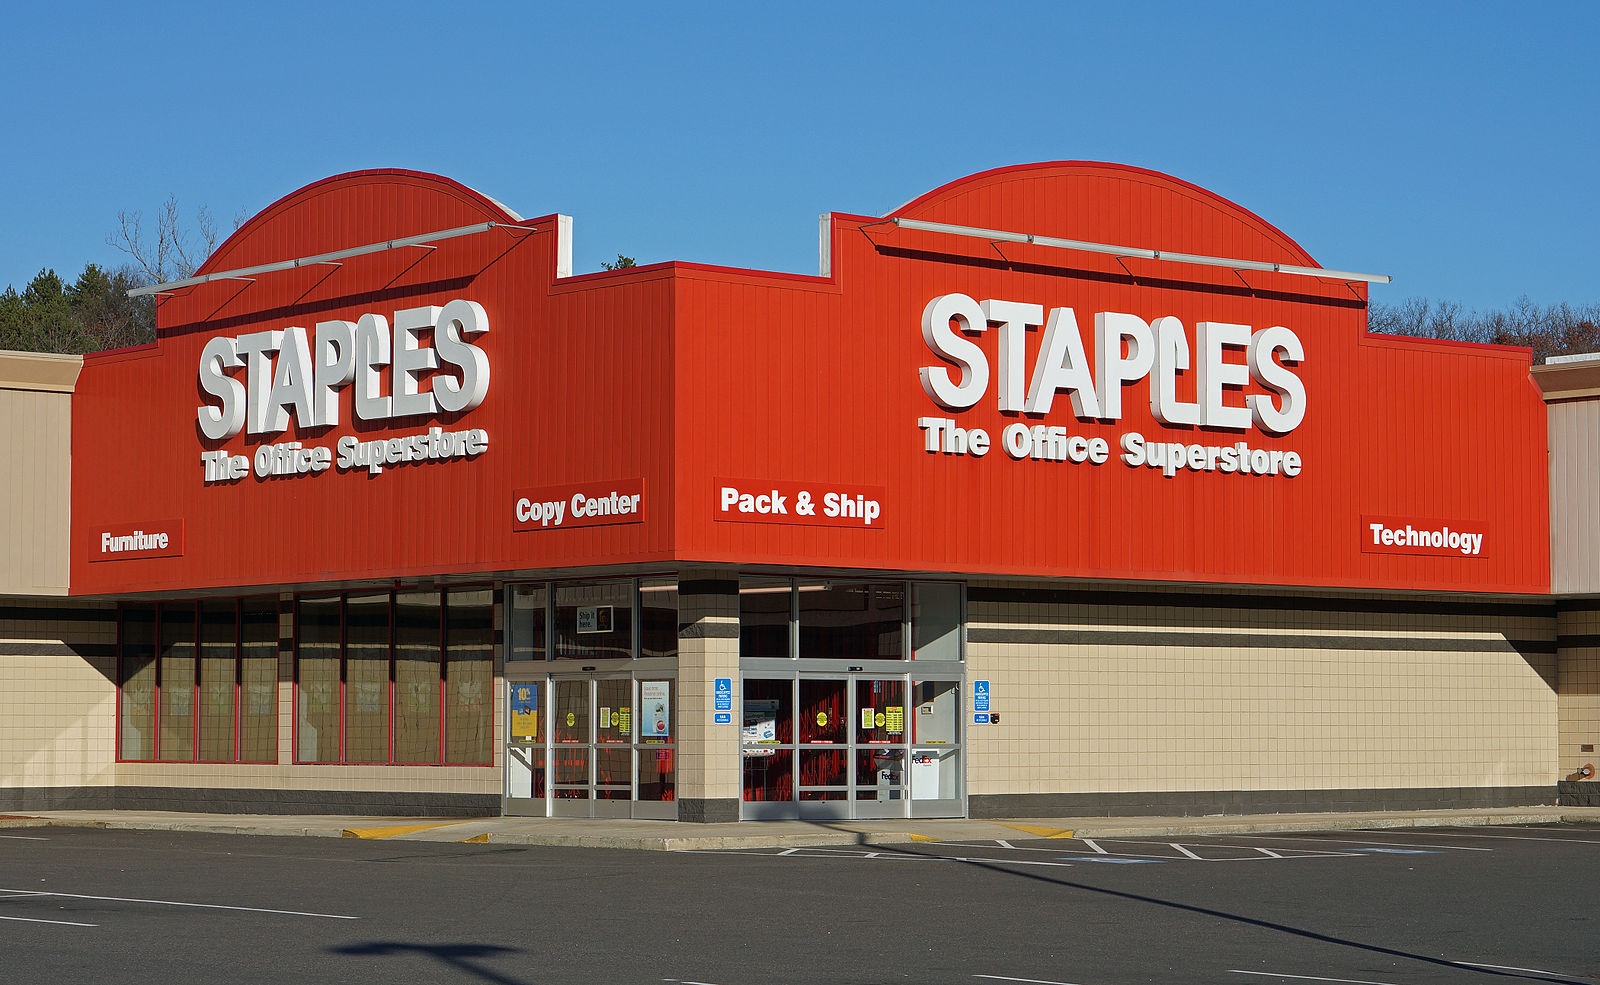 Staples has big deals on Acer, HP laptops, Bose SoundLink micro speaker and more